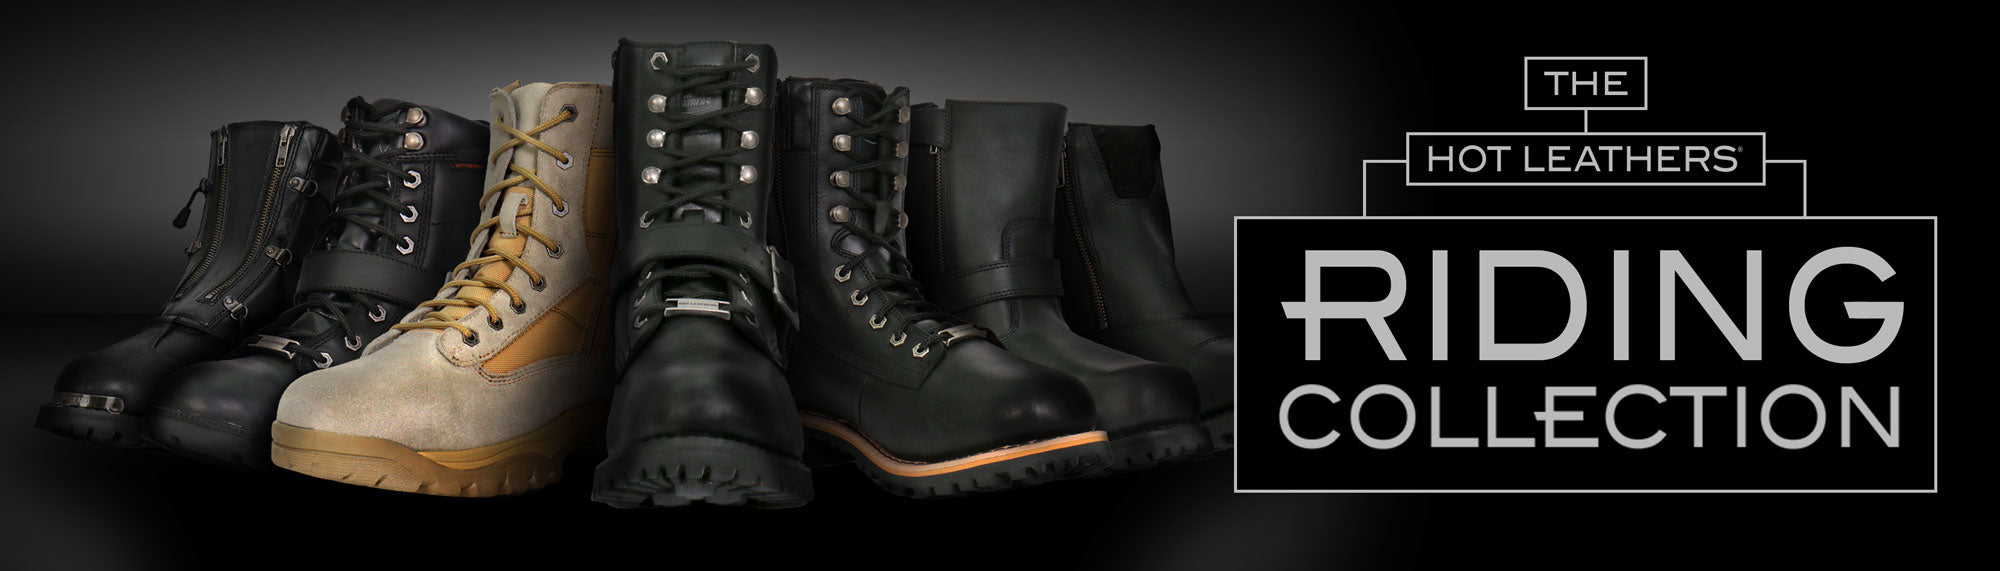 Hot Leathers Motorcycle Boots for men women and ladies sneakers and footwear